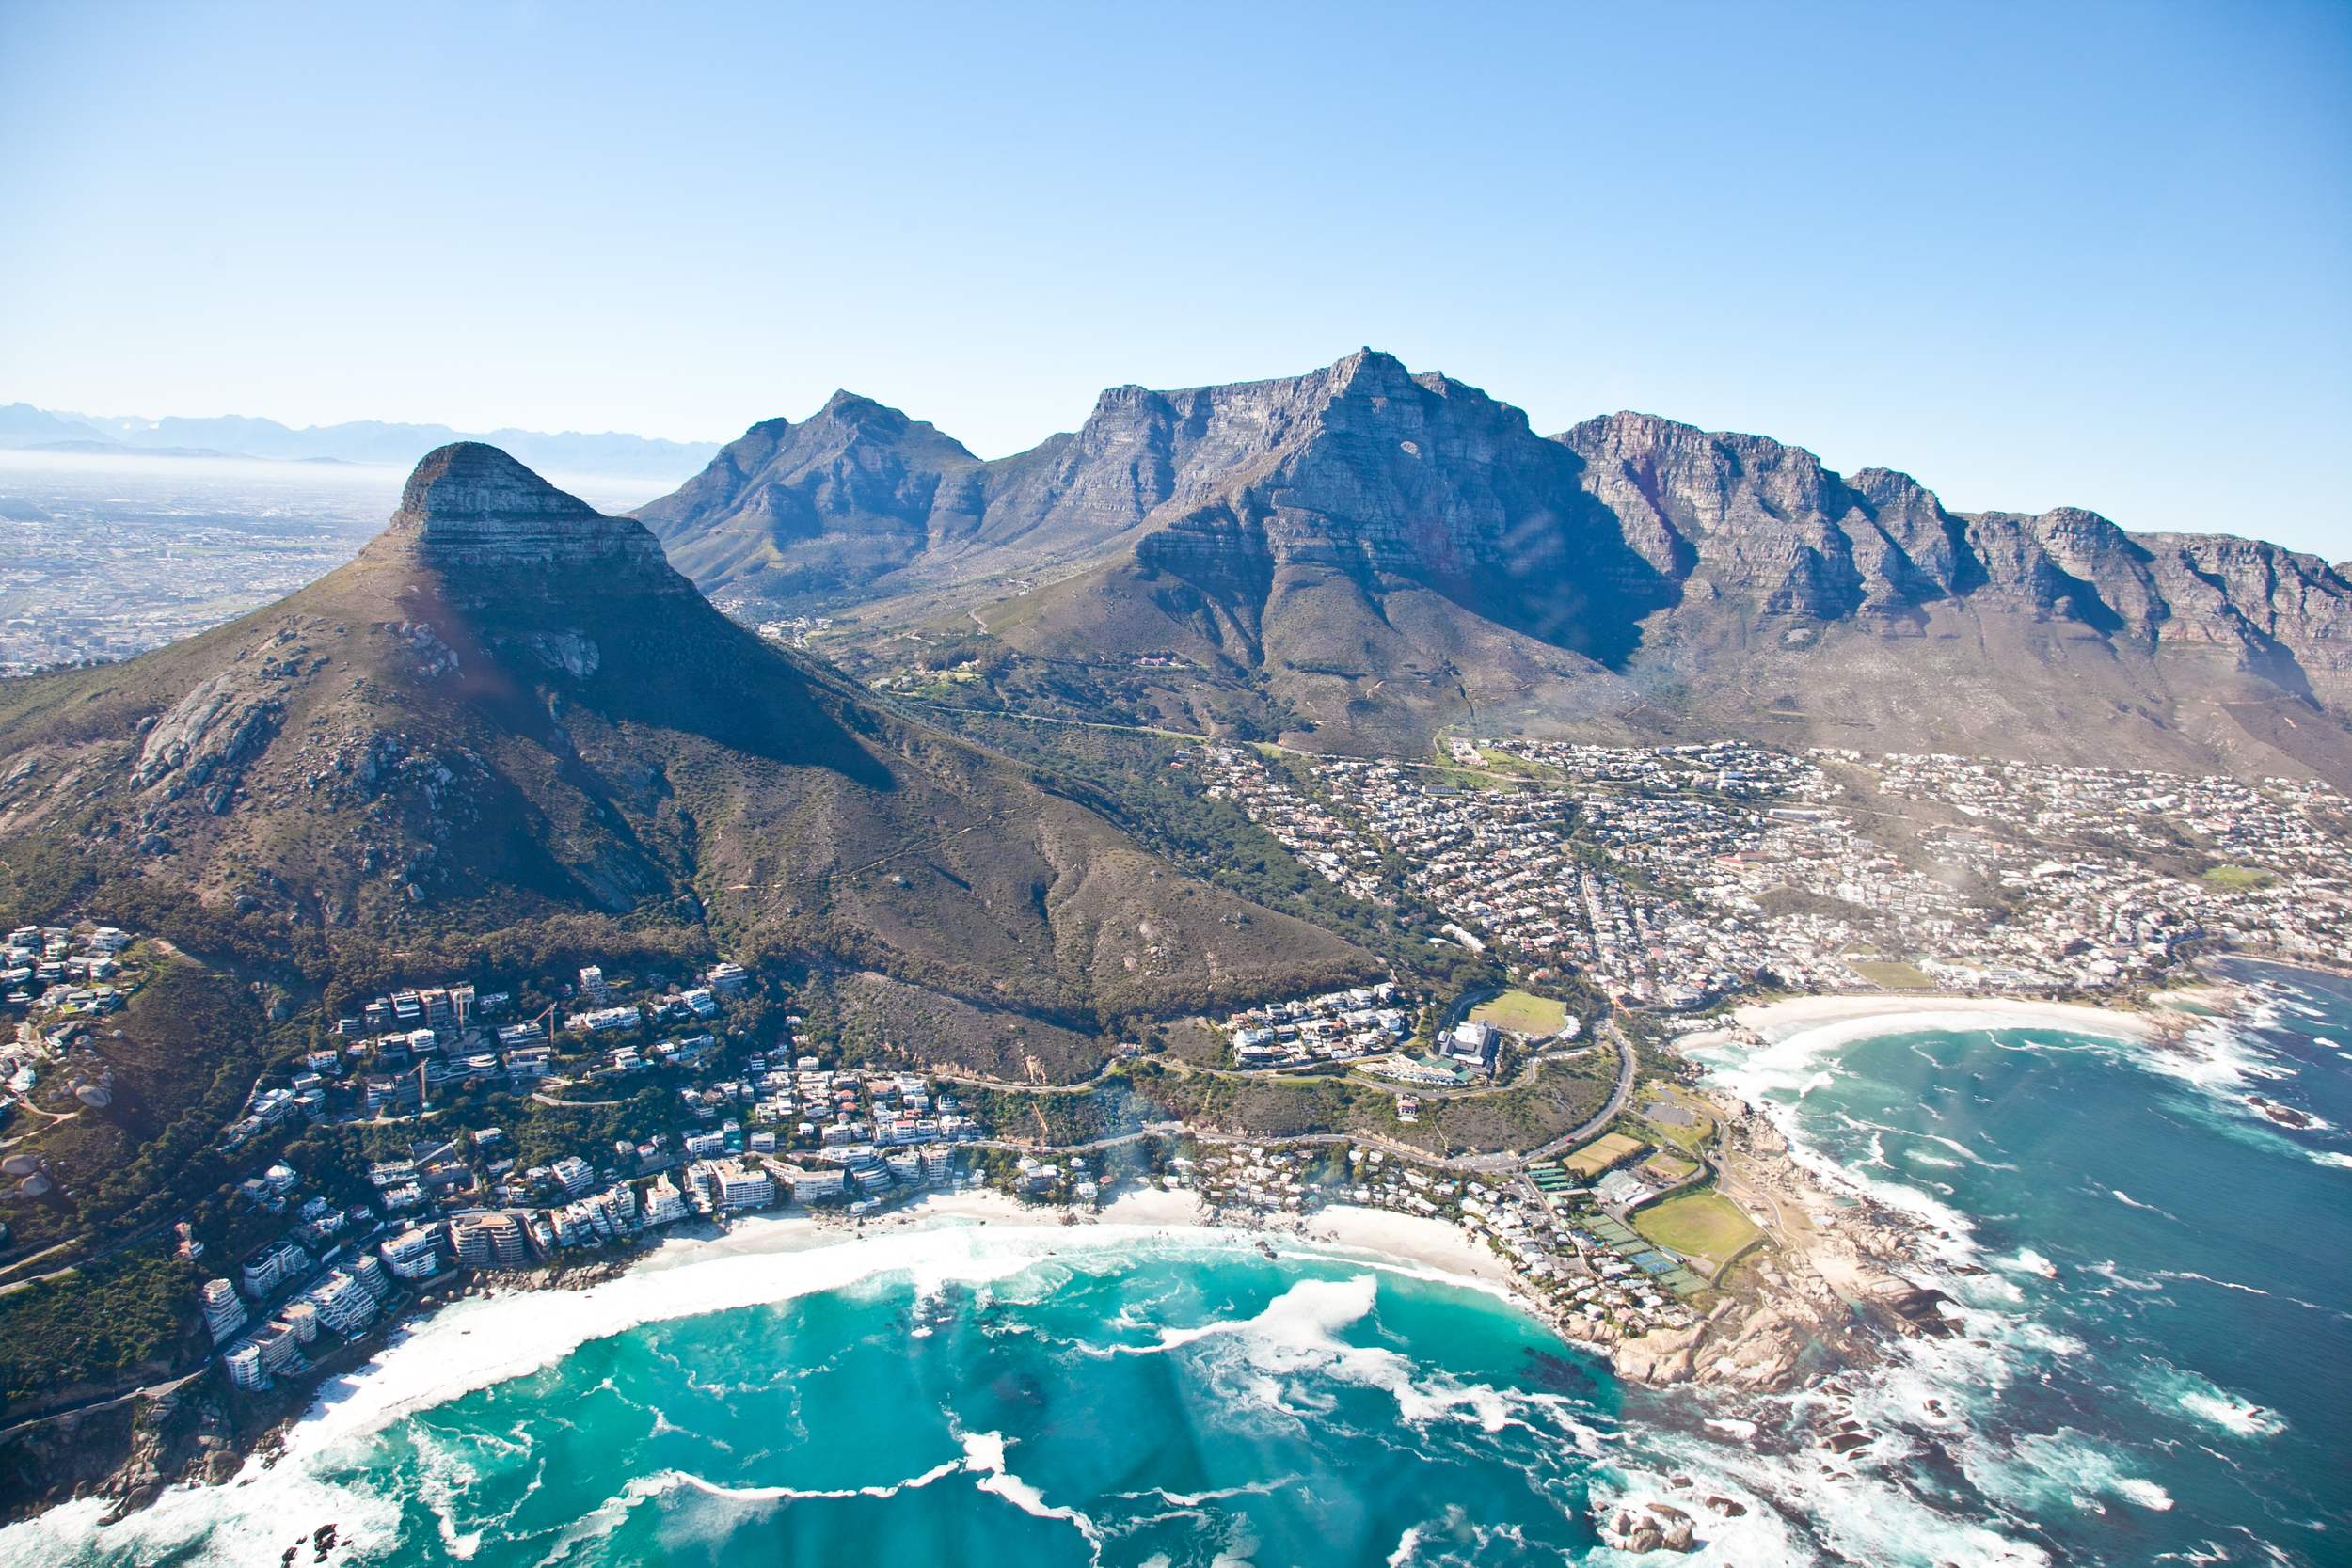 IMG_4819-cape-town-south-africa-helicopter-ride-trisa-taro.jpg